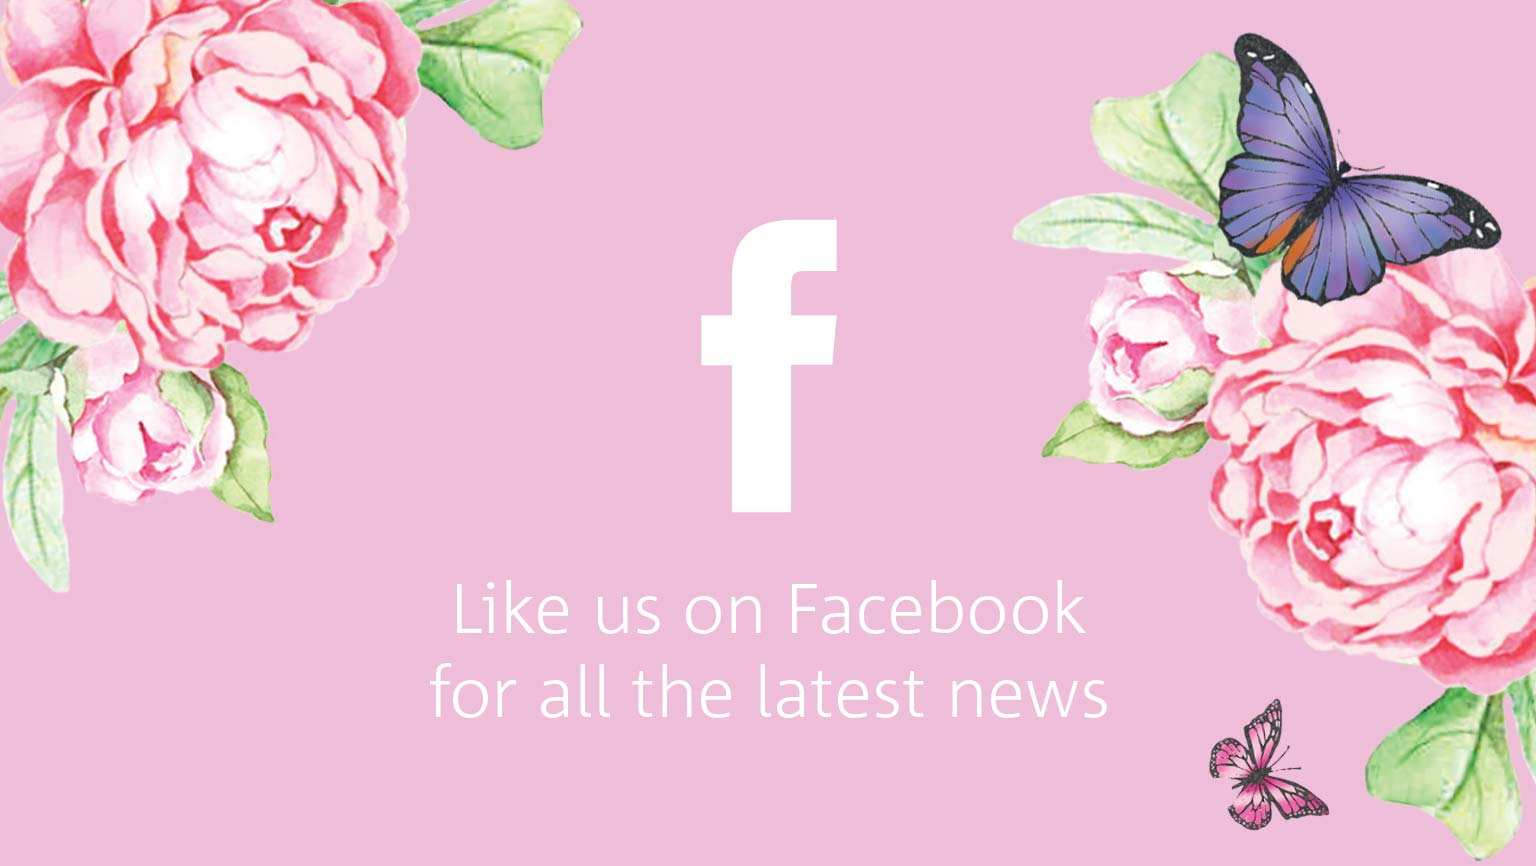 Like us on Facebook for all the latest news